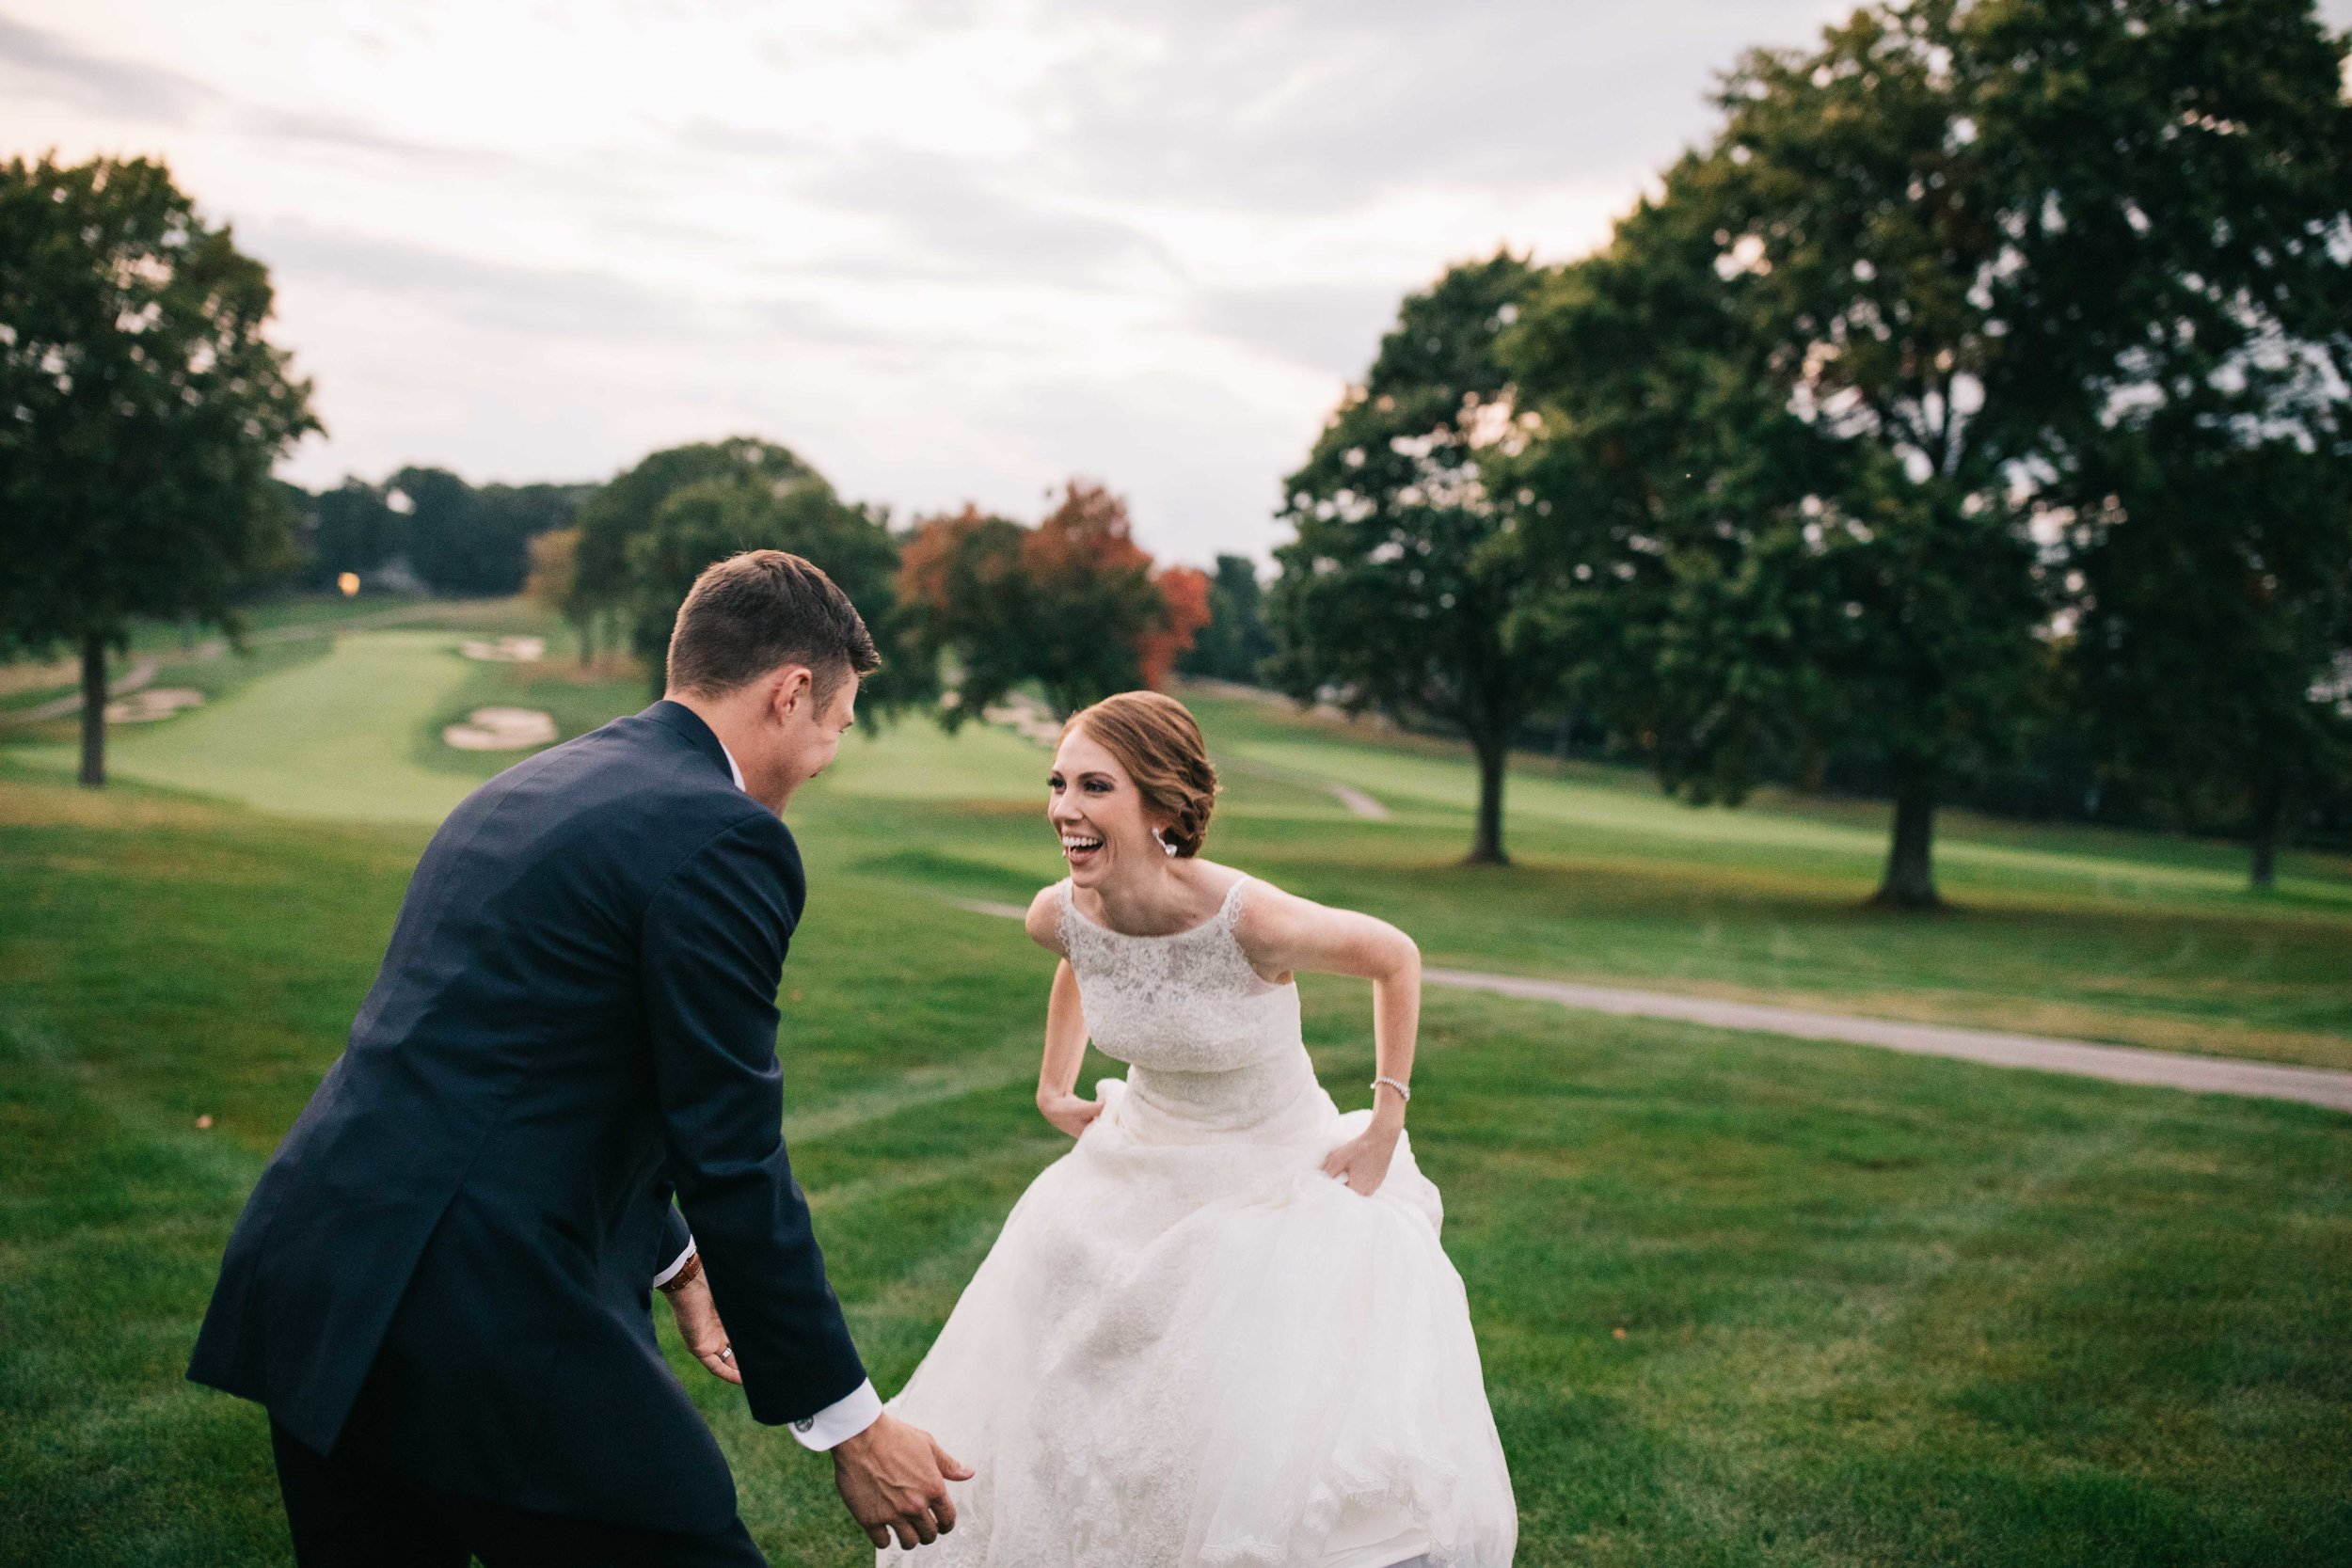 Sewickley Heights Golf Club Wedding - Ahsley & Ethan-443.jpg